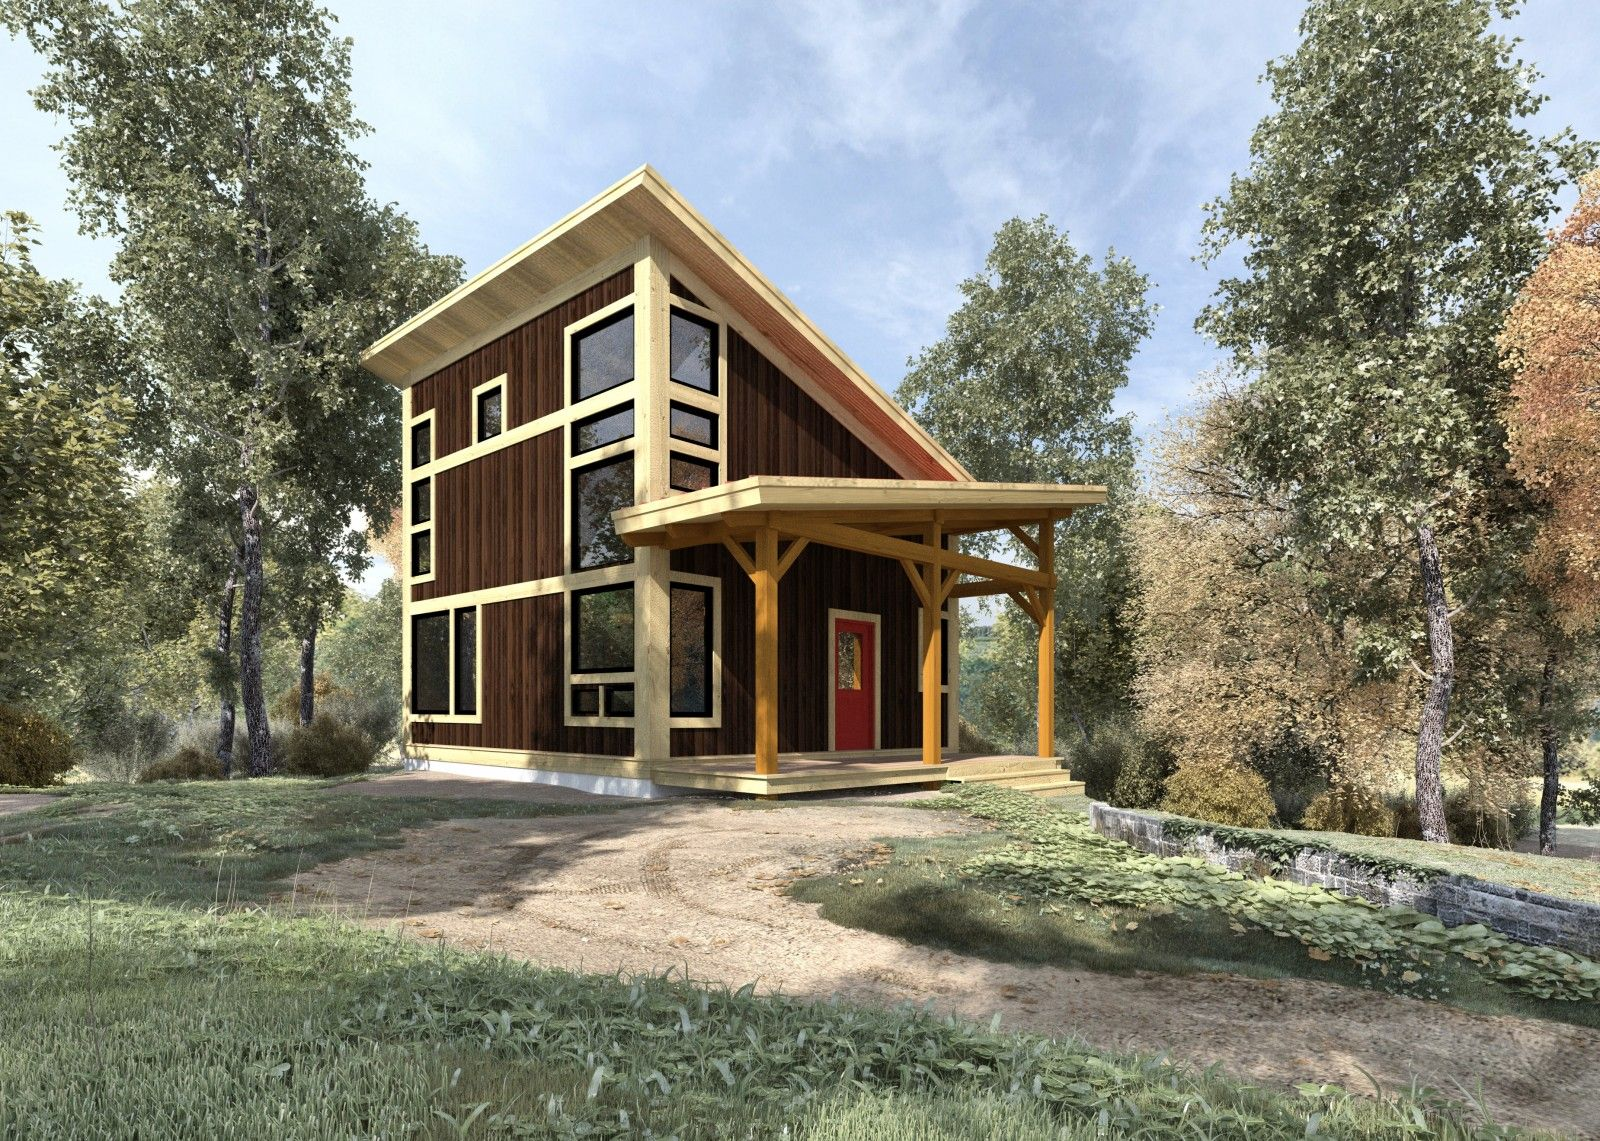 Brookside 844 Sq Ft From The Cabin Series Of Timber Frame Home